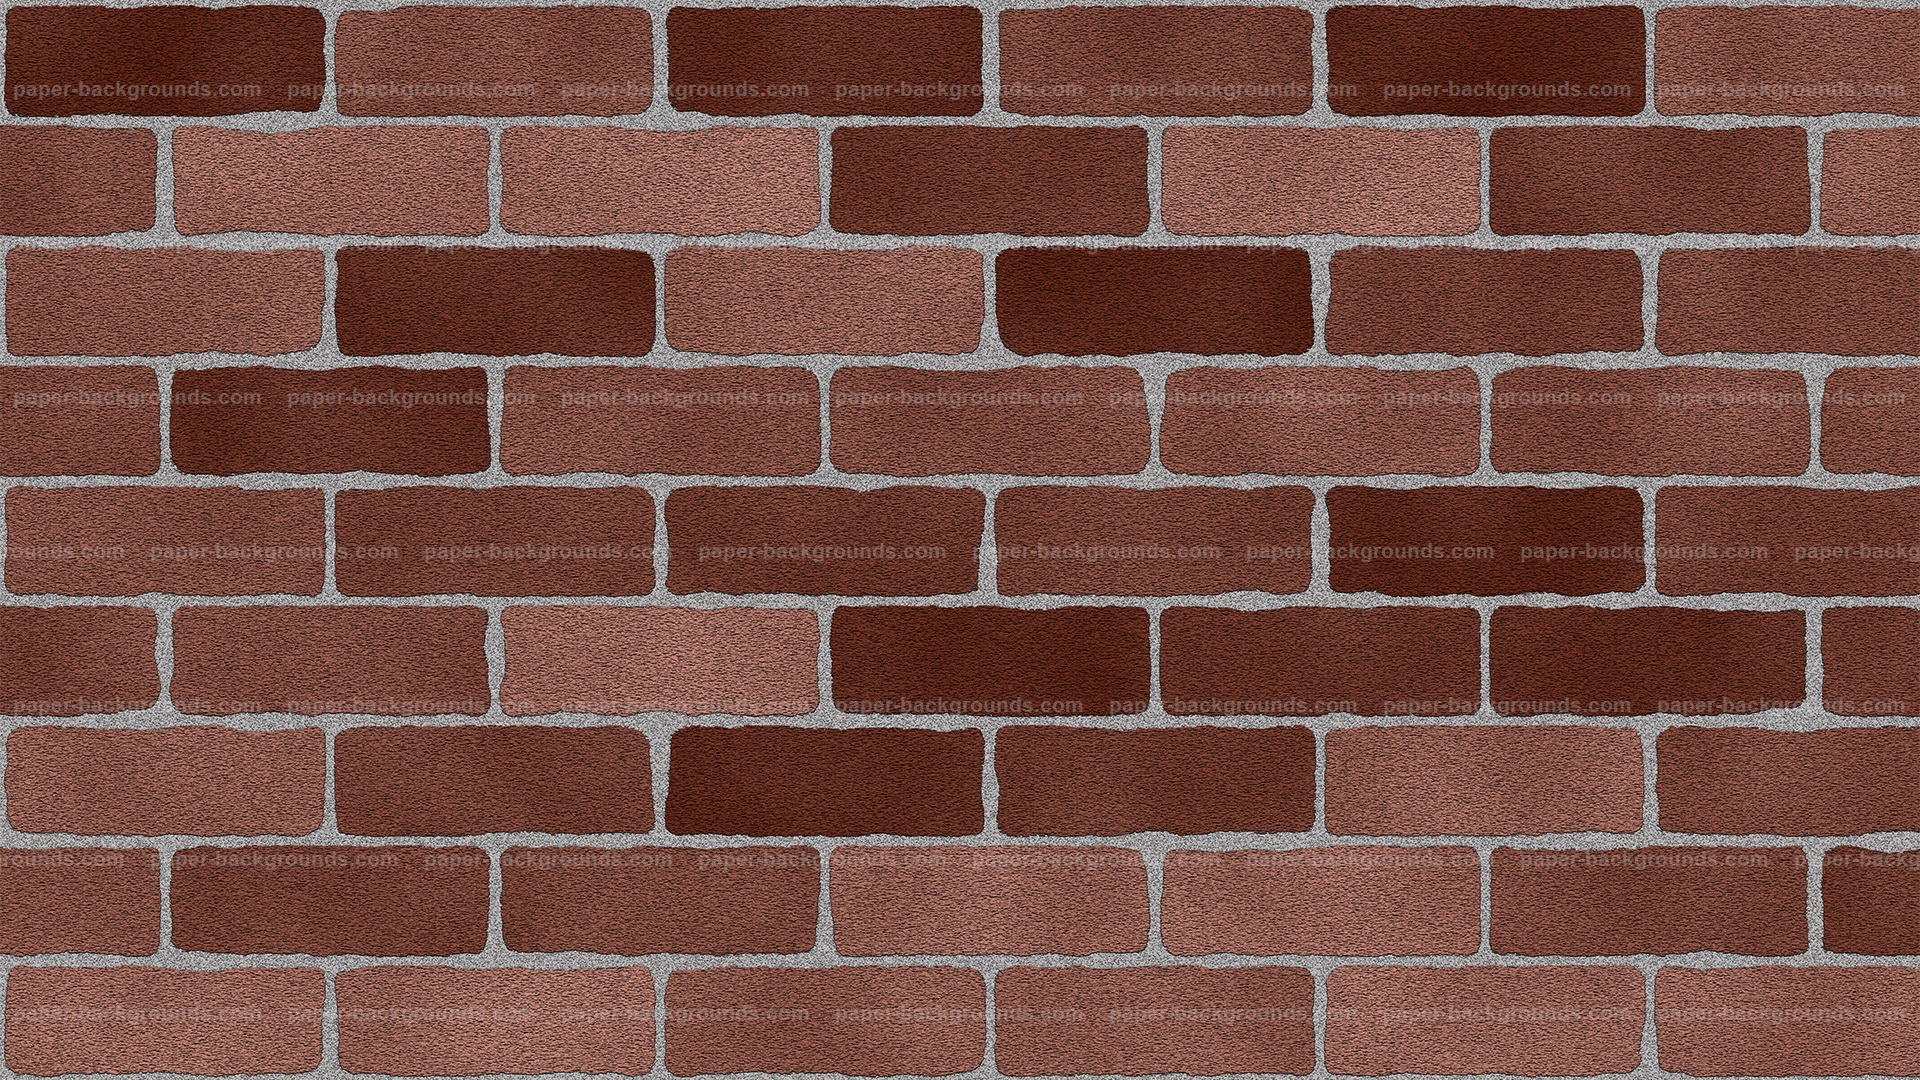 Free 3d Pile Of Bricks Wallpaper Paper Backgrounds Paving Royalty Free Hd Paper Backgrounds